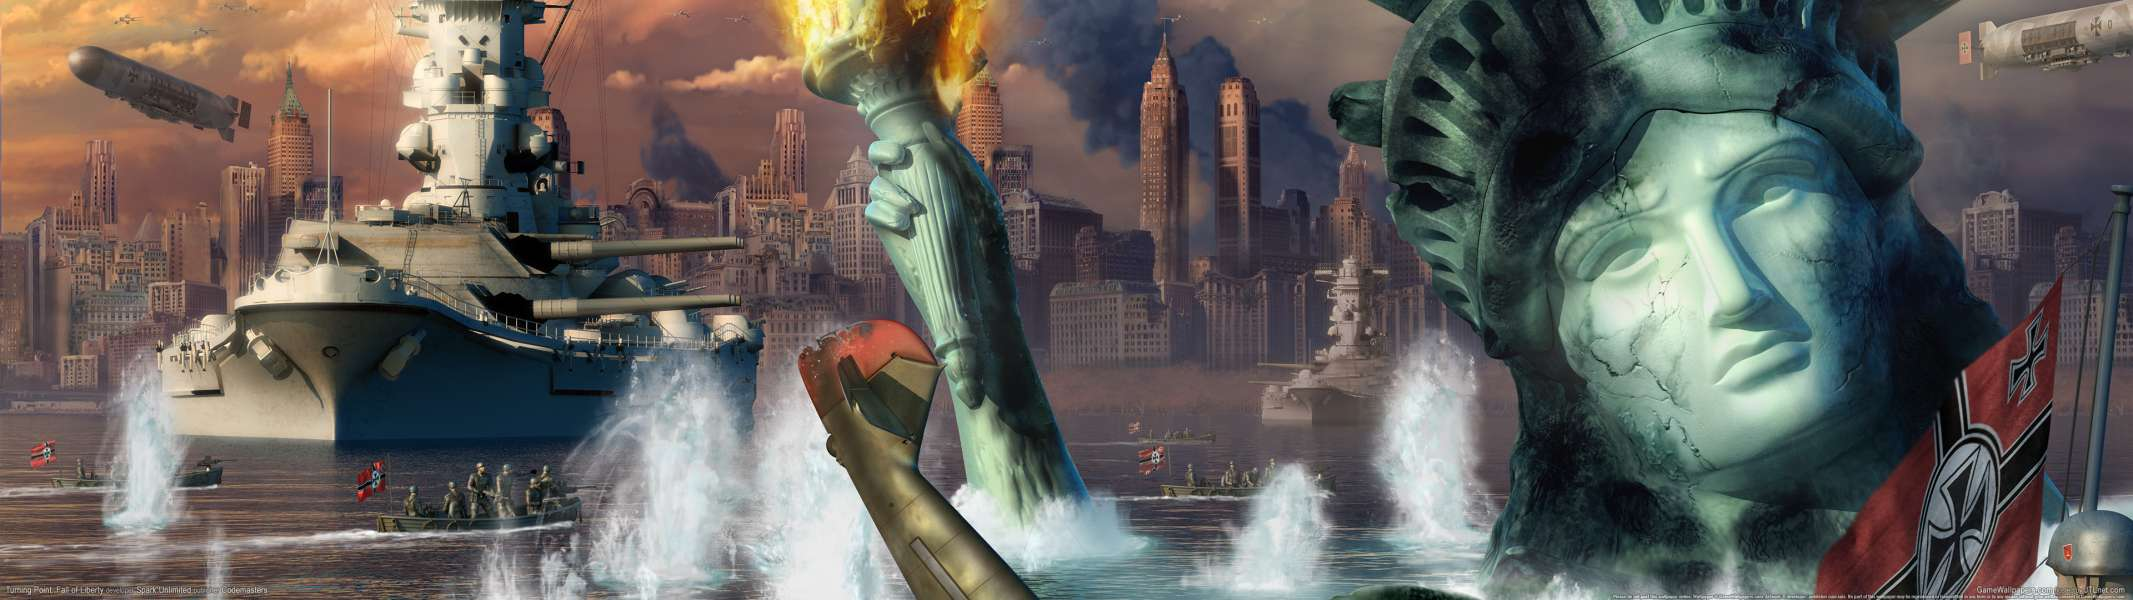 Turning Point: Fall of Liberty dual screen wallpaper or background